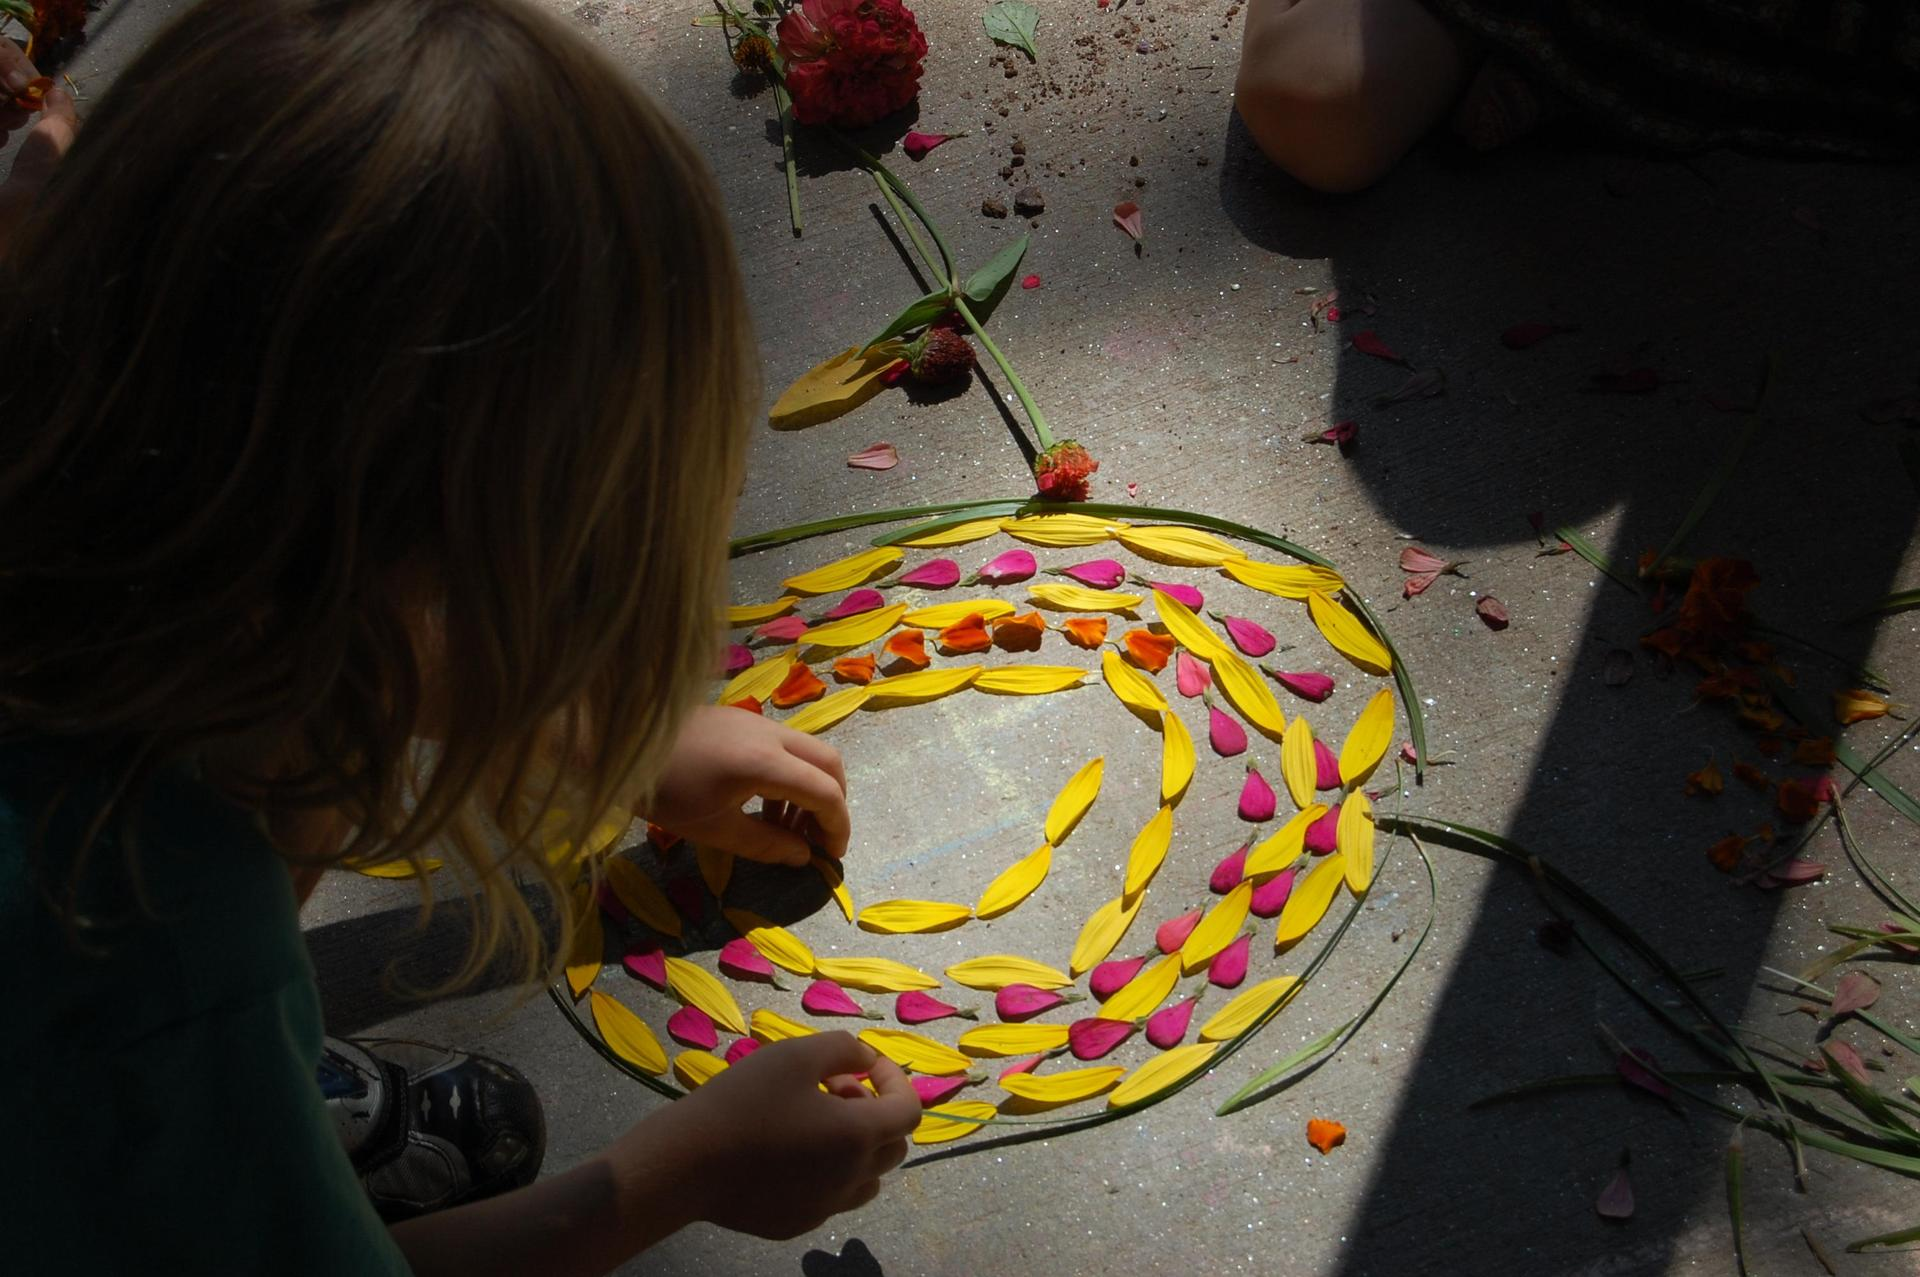 child arranging flower petals in a spiral